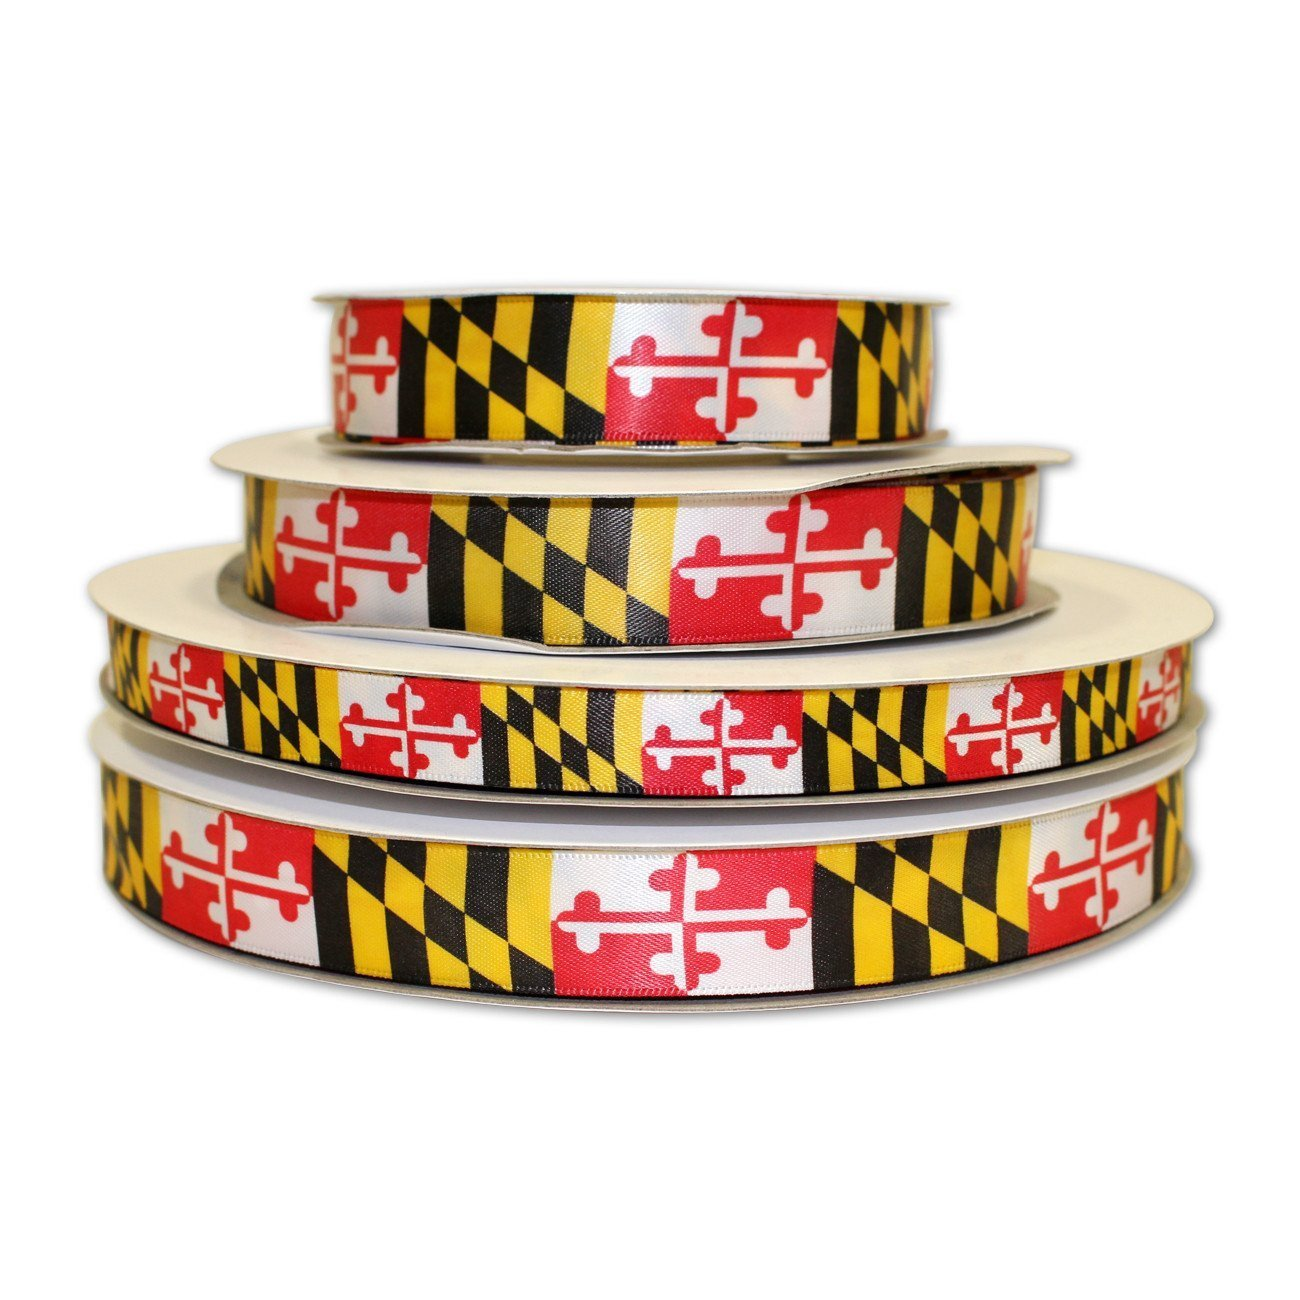 Route One Apparel | Maryland Flag Decorative Ribbon (100 Yards, 1/2 Inch Ribbon) by Route One Apparel (Image #1)